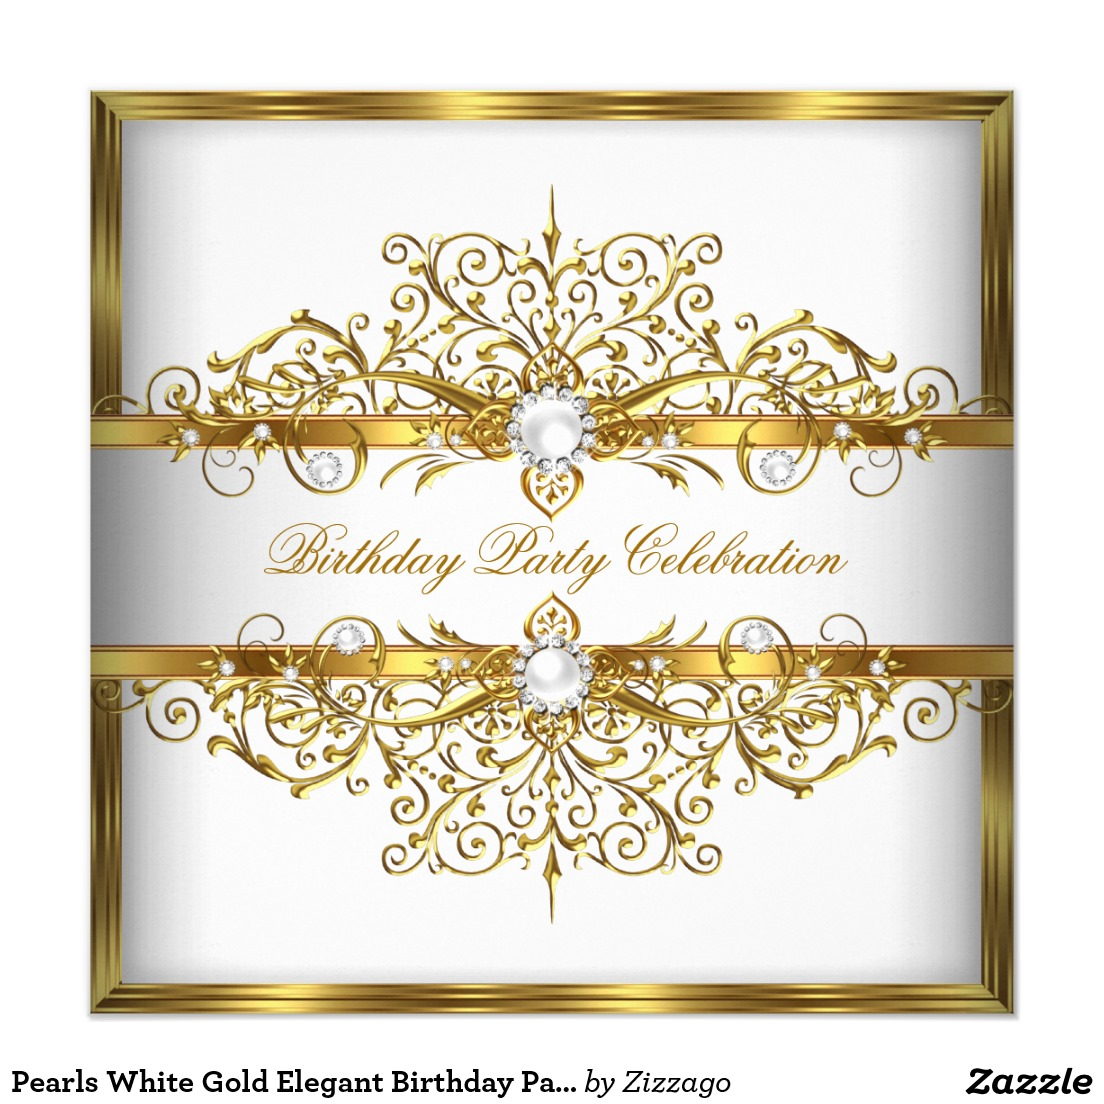 40Th Birthday Invitations Free Templates as nice invitation layout